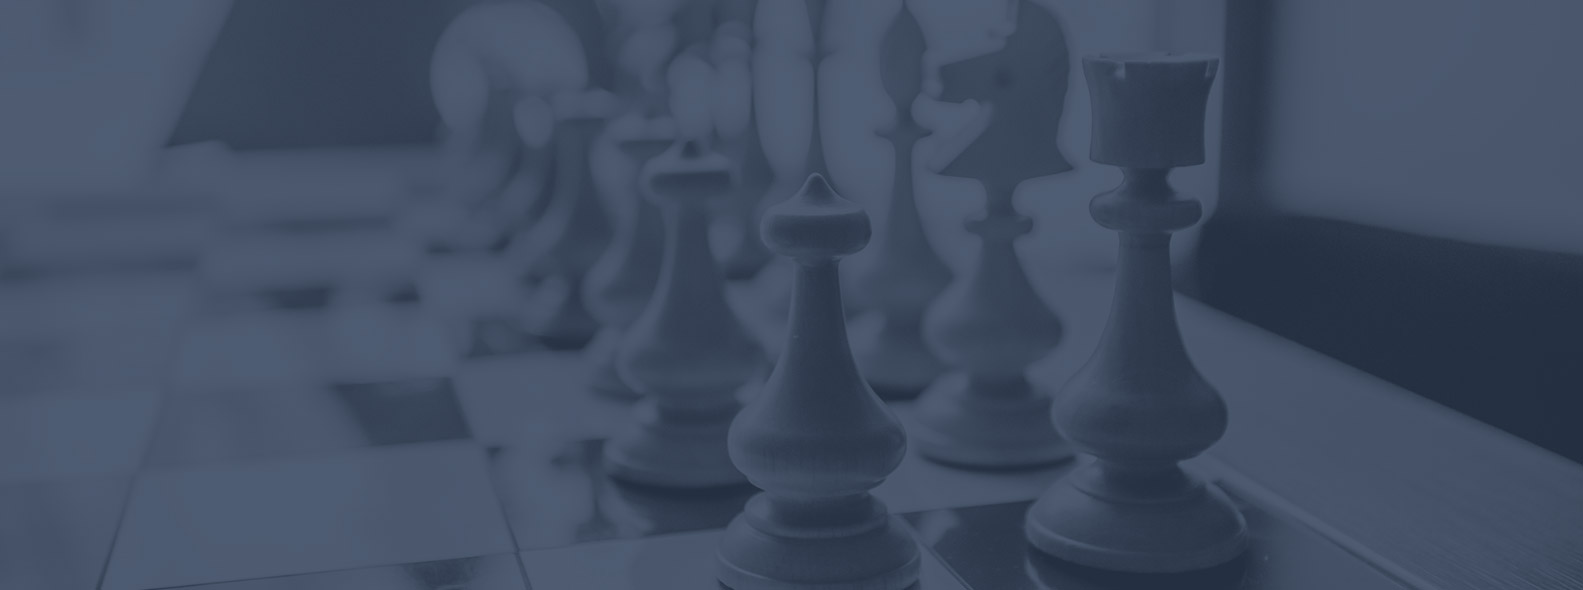 A chess board with chess pieces representing due diligence consulting as the next strategic move in your business strategy